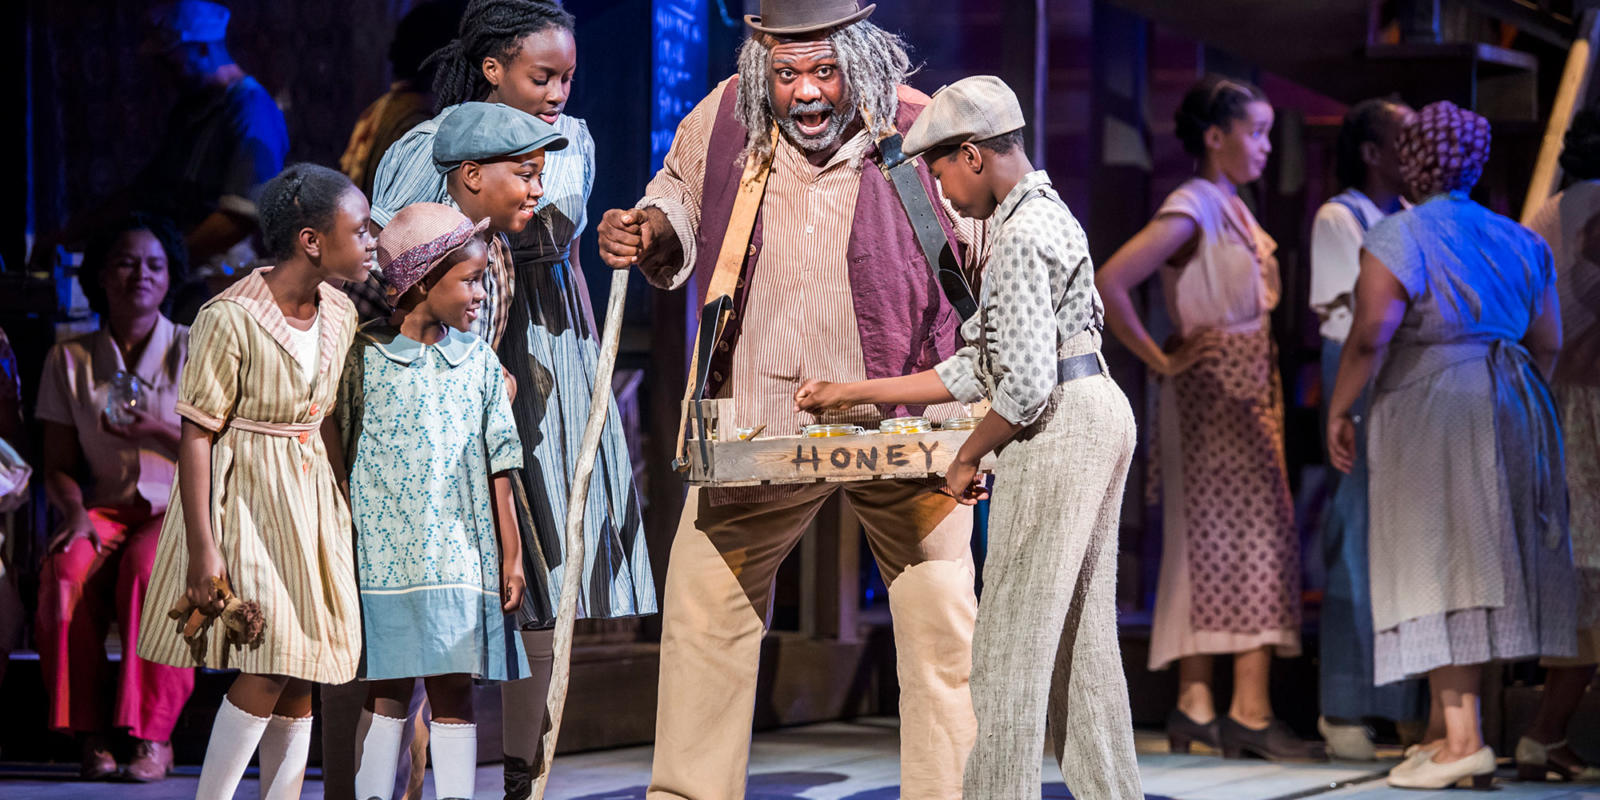 ENO Porgy and Bess: Ronald Samm (c) Tristram Kenton